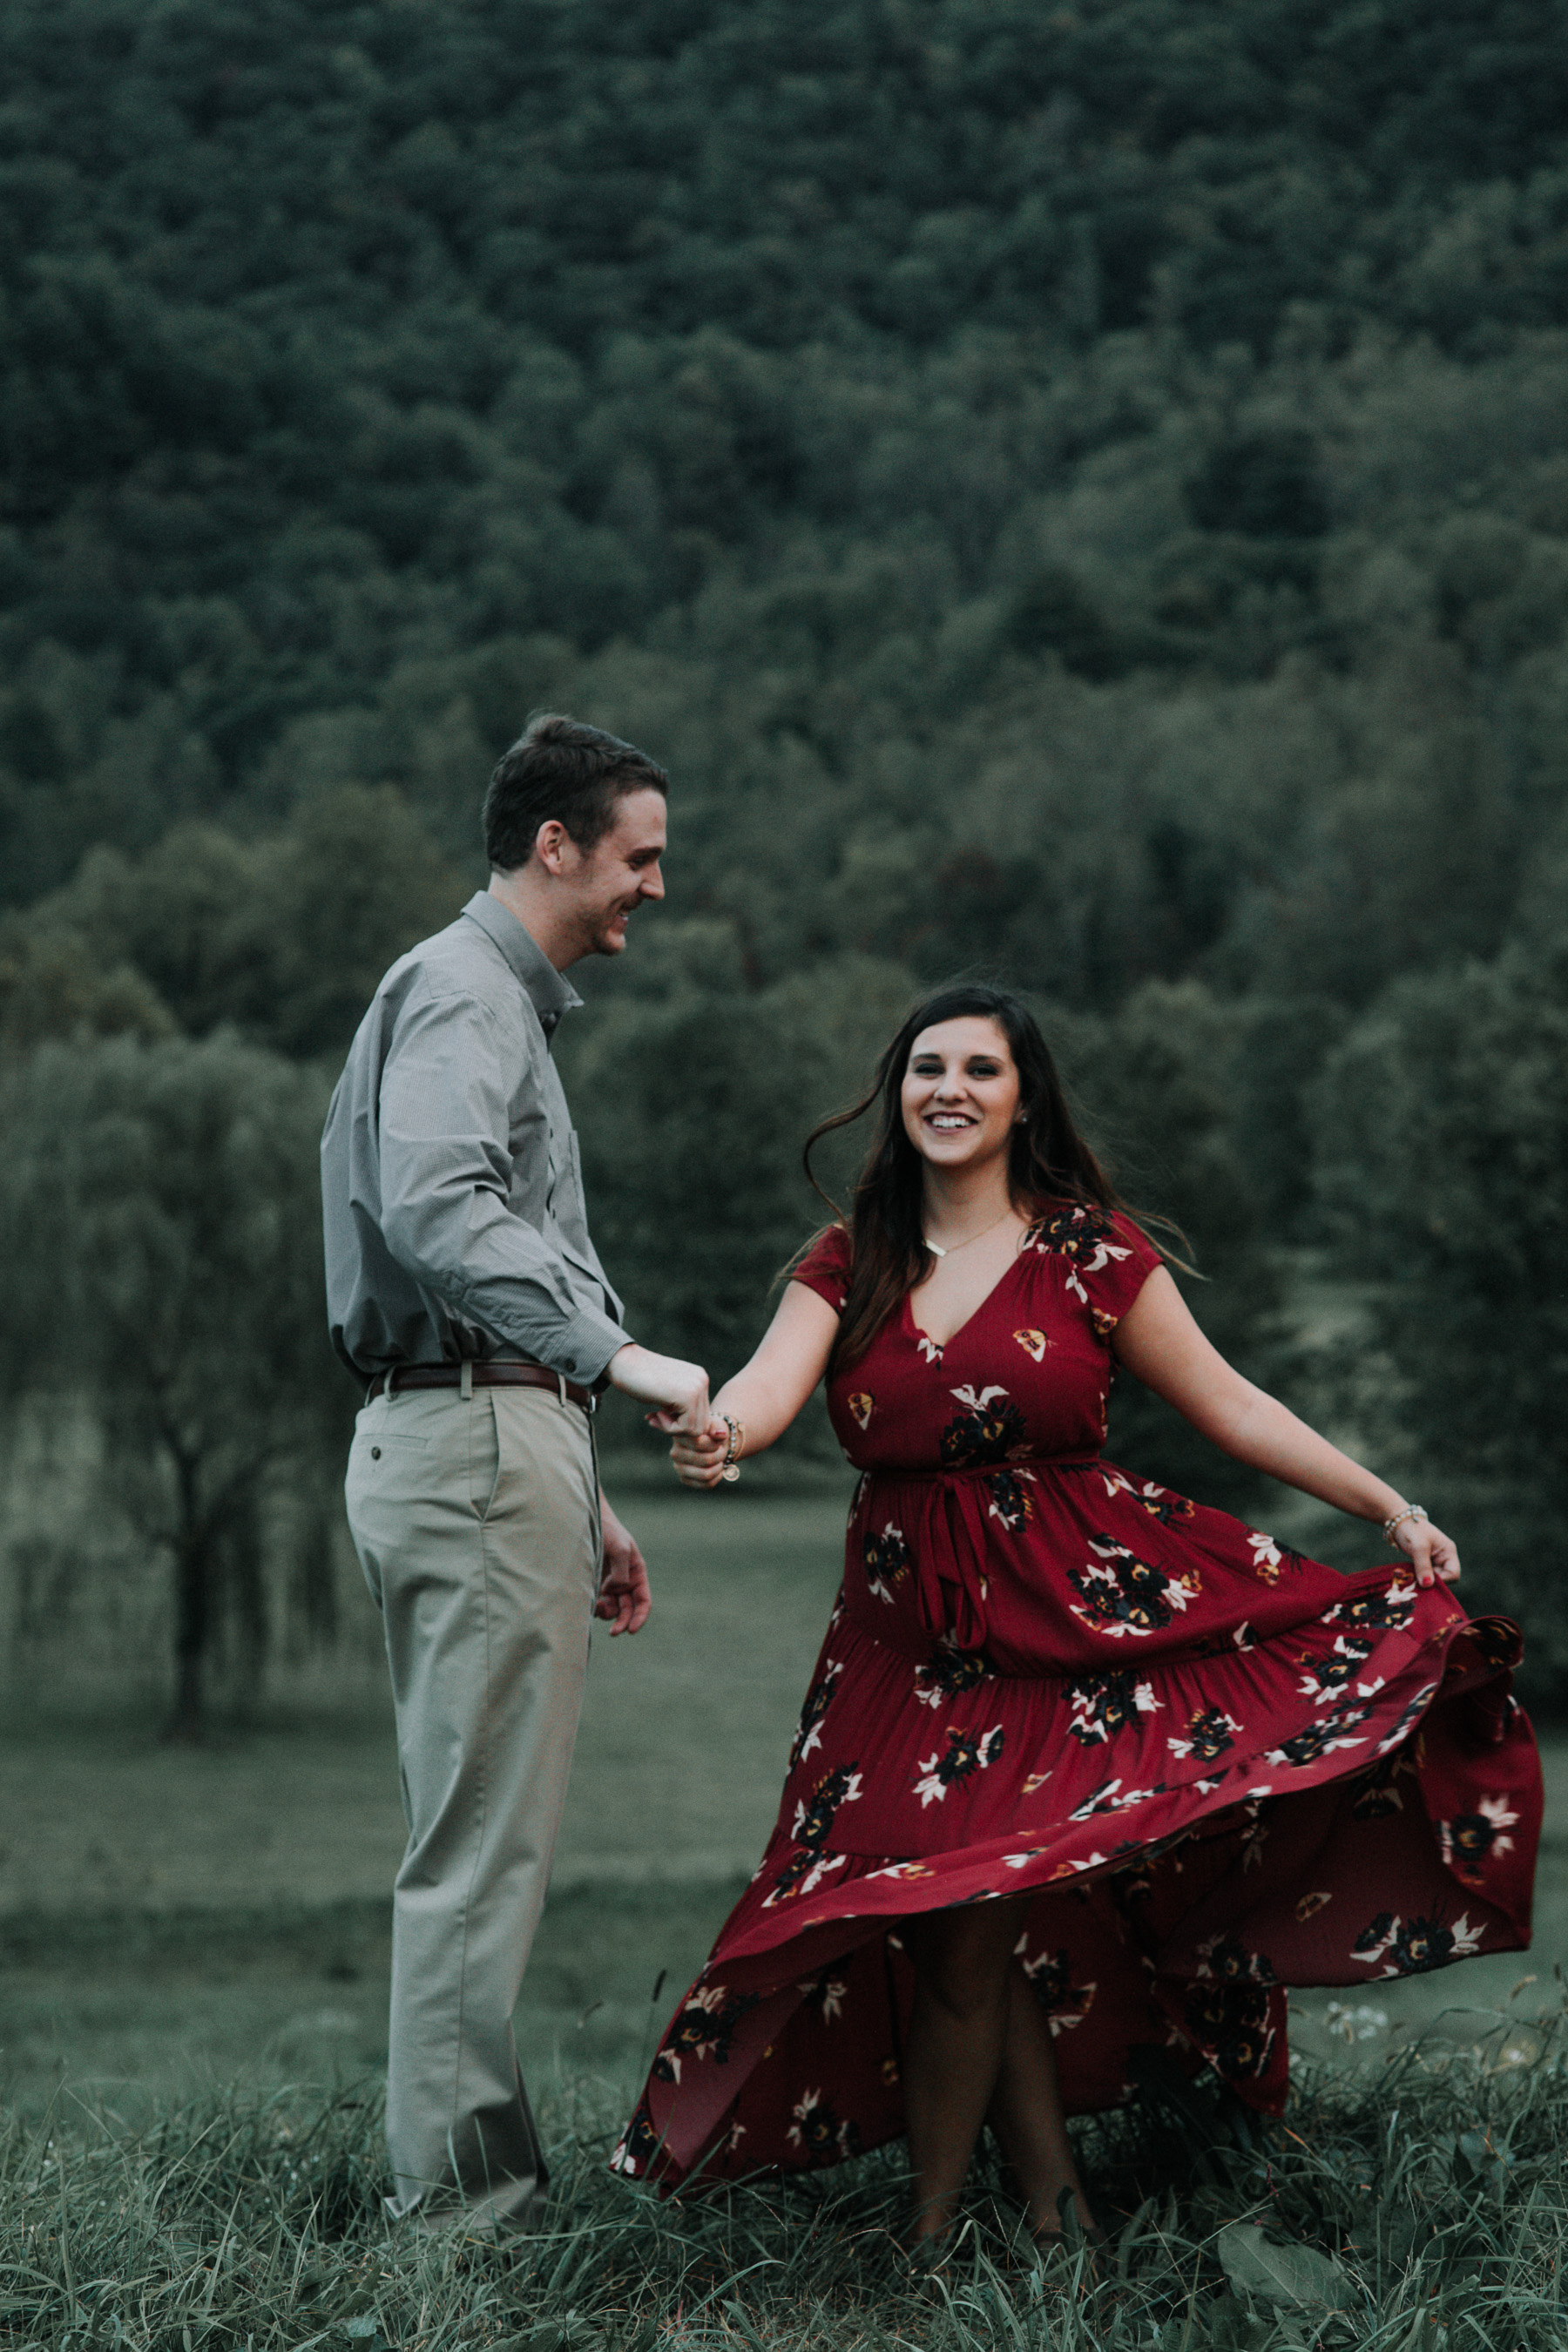 engagement-session-photography.jpg